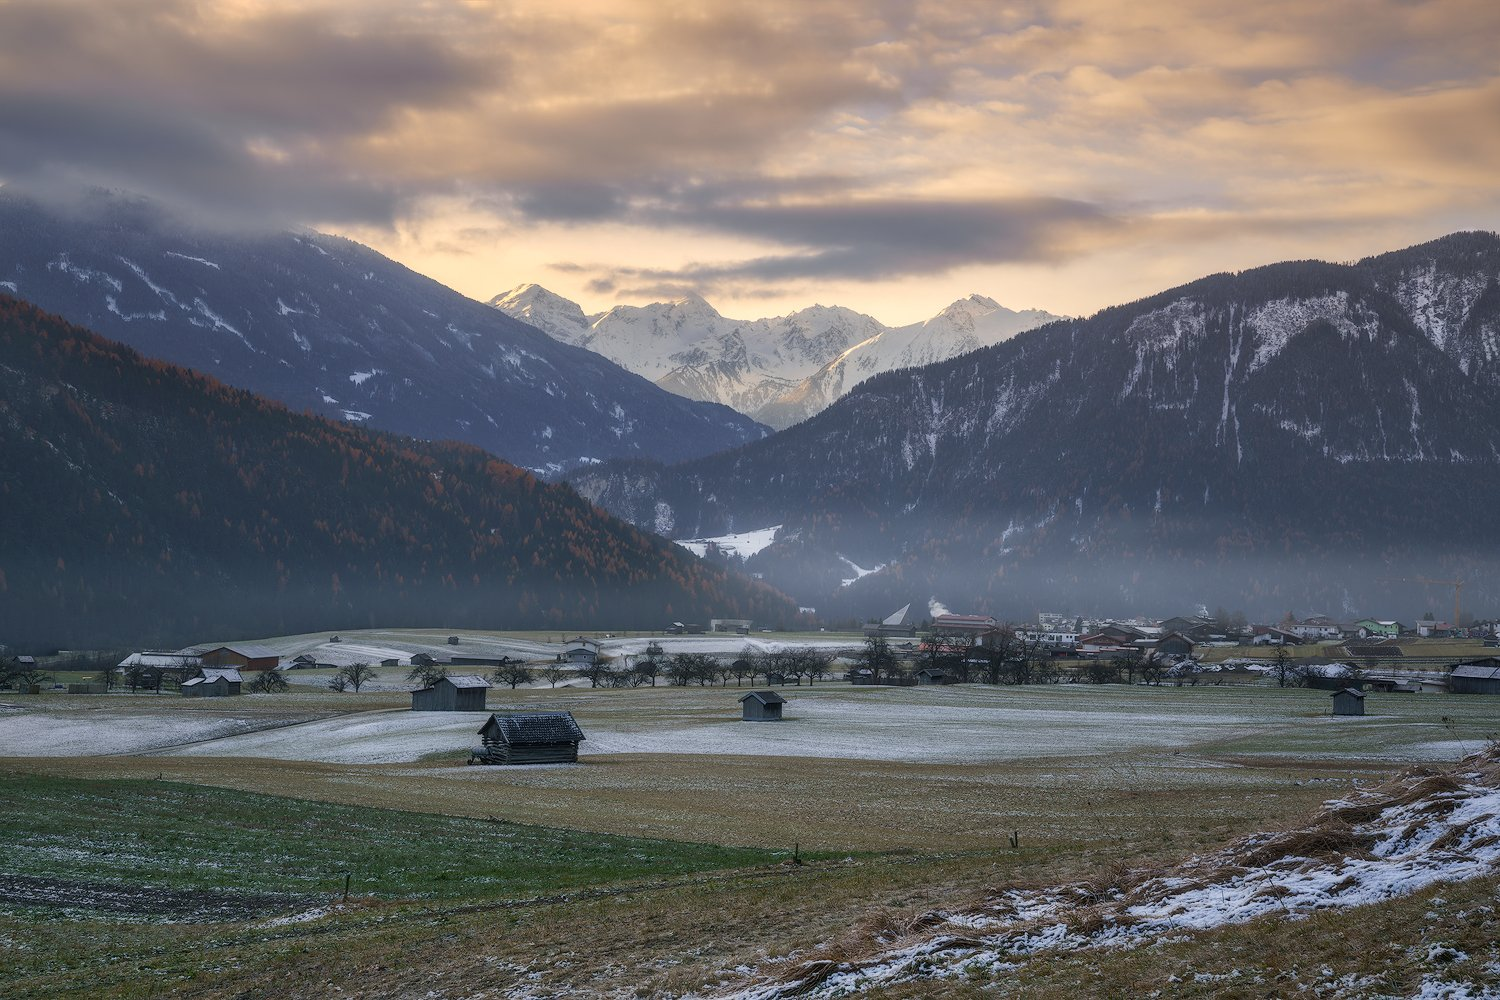 acres, agriculture, alps, austria, austrian alps, barns, forest, fruit trees, gurgltal, hauses, hey barns, hills, huts, imst, larch trees, larches, meadows, morning, morning glow, mountains, outdoors, peaks, snow, tarrenz, tyrol, valley, village, winter, Ludwig Riml